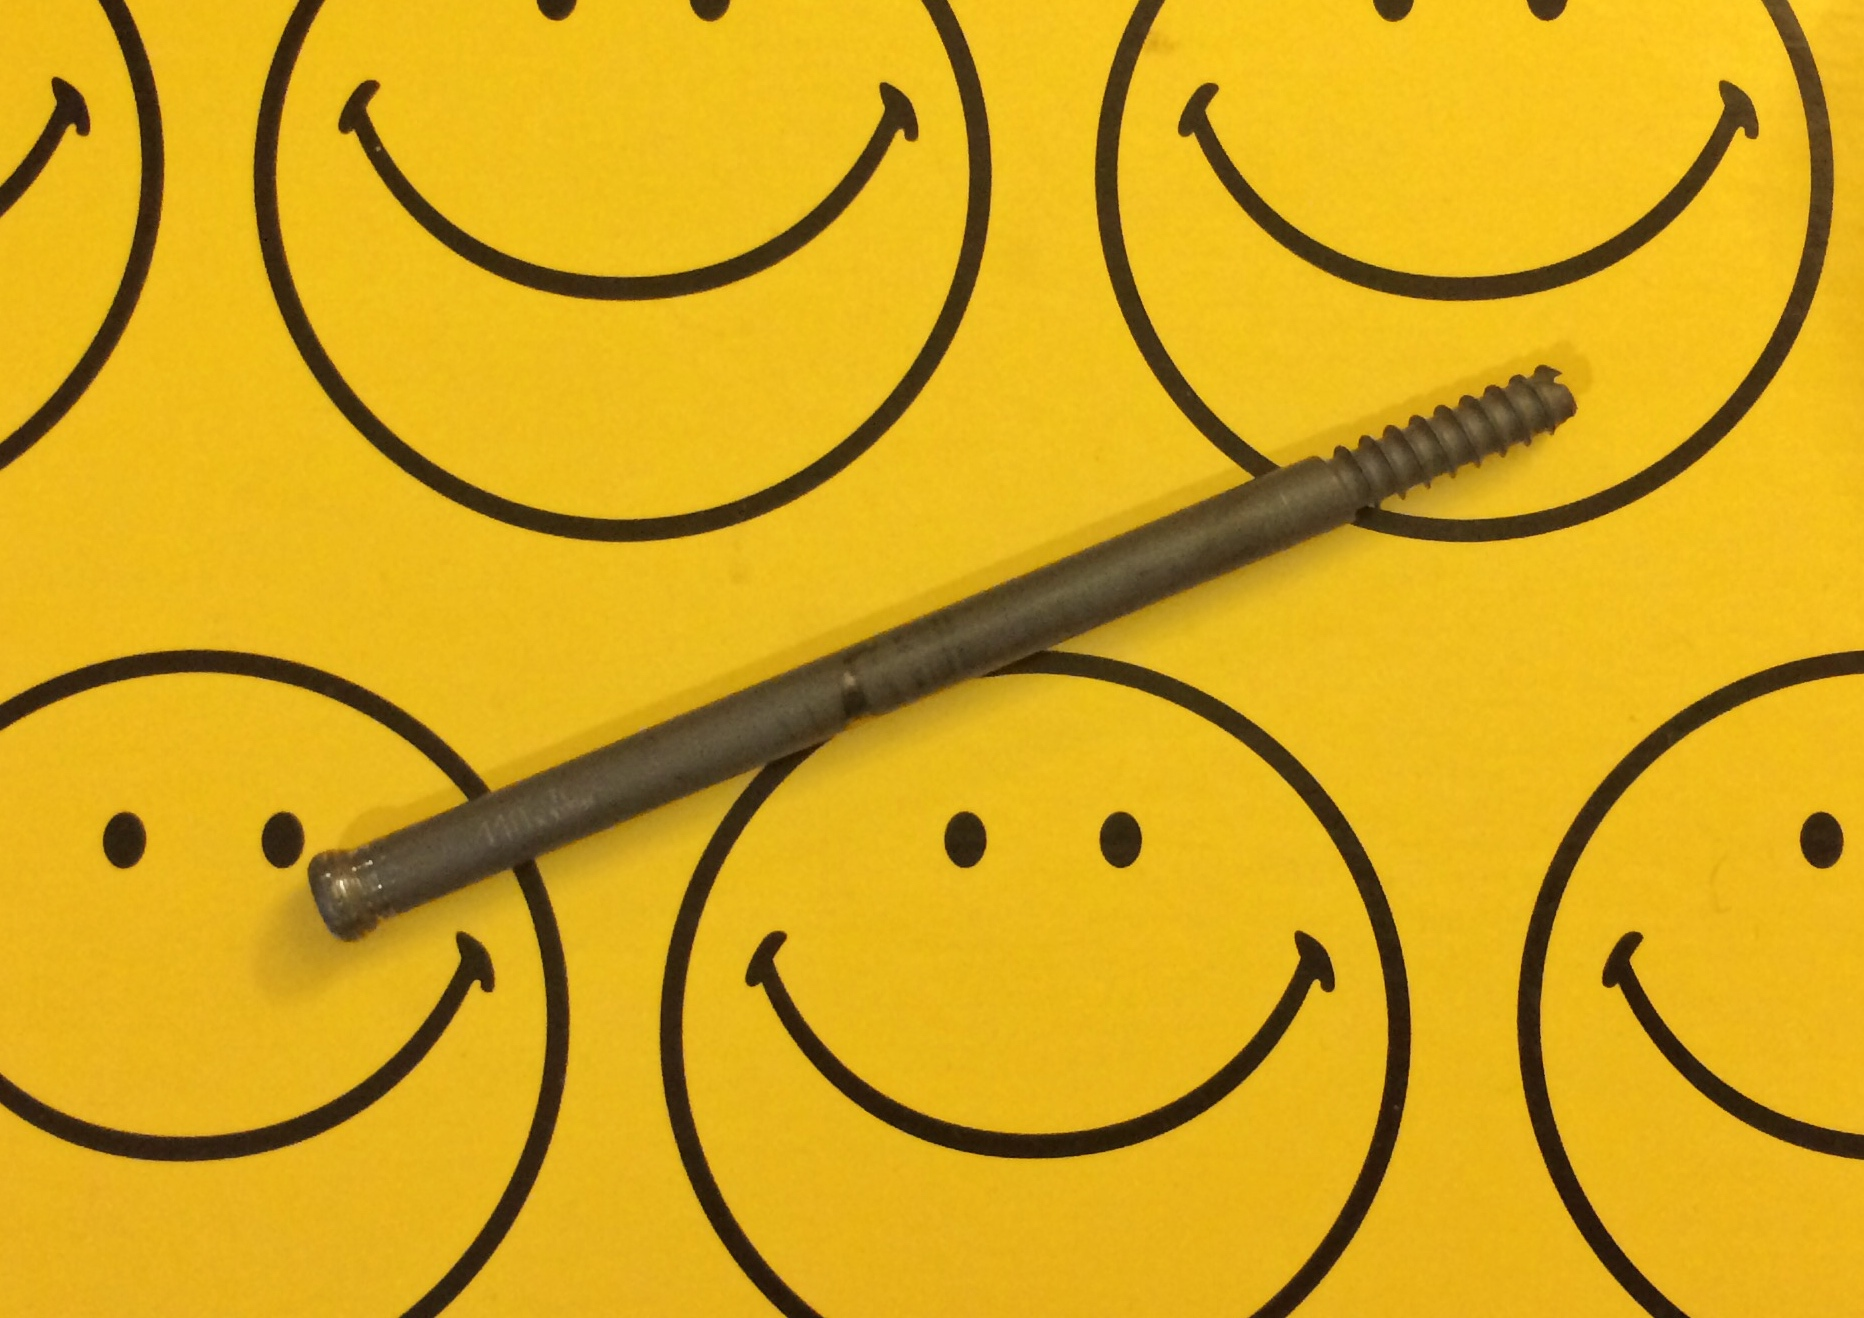 Smiles and a screw (from my leg).